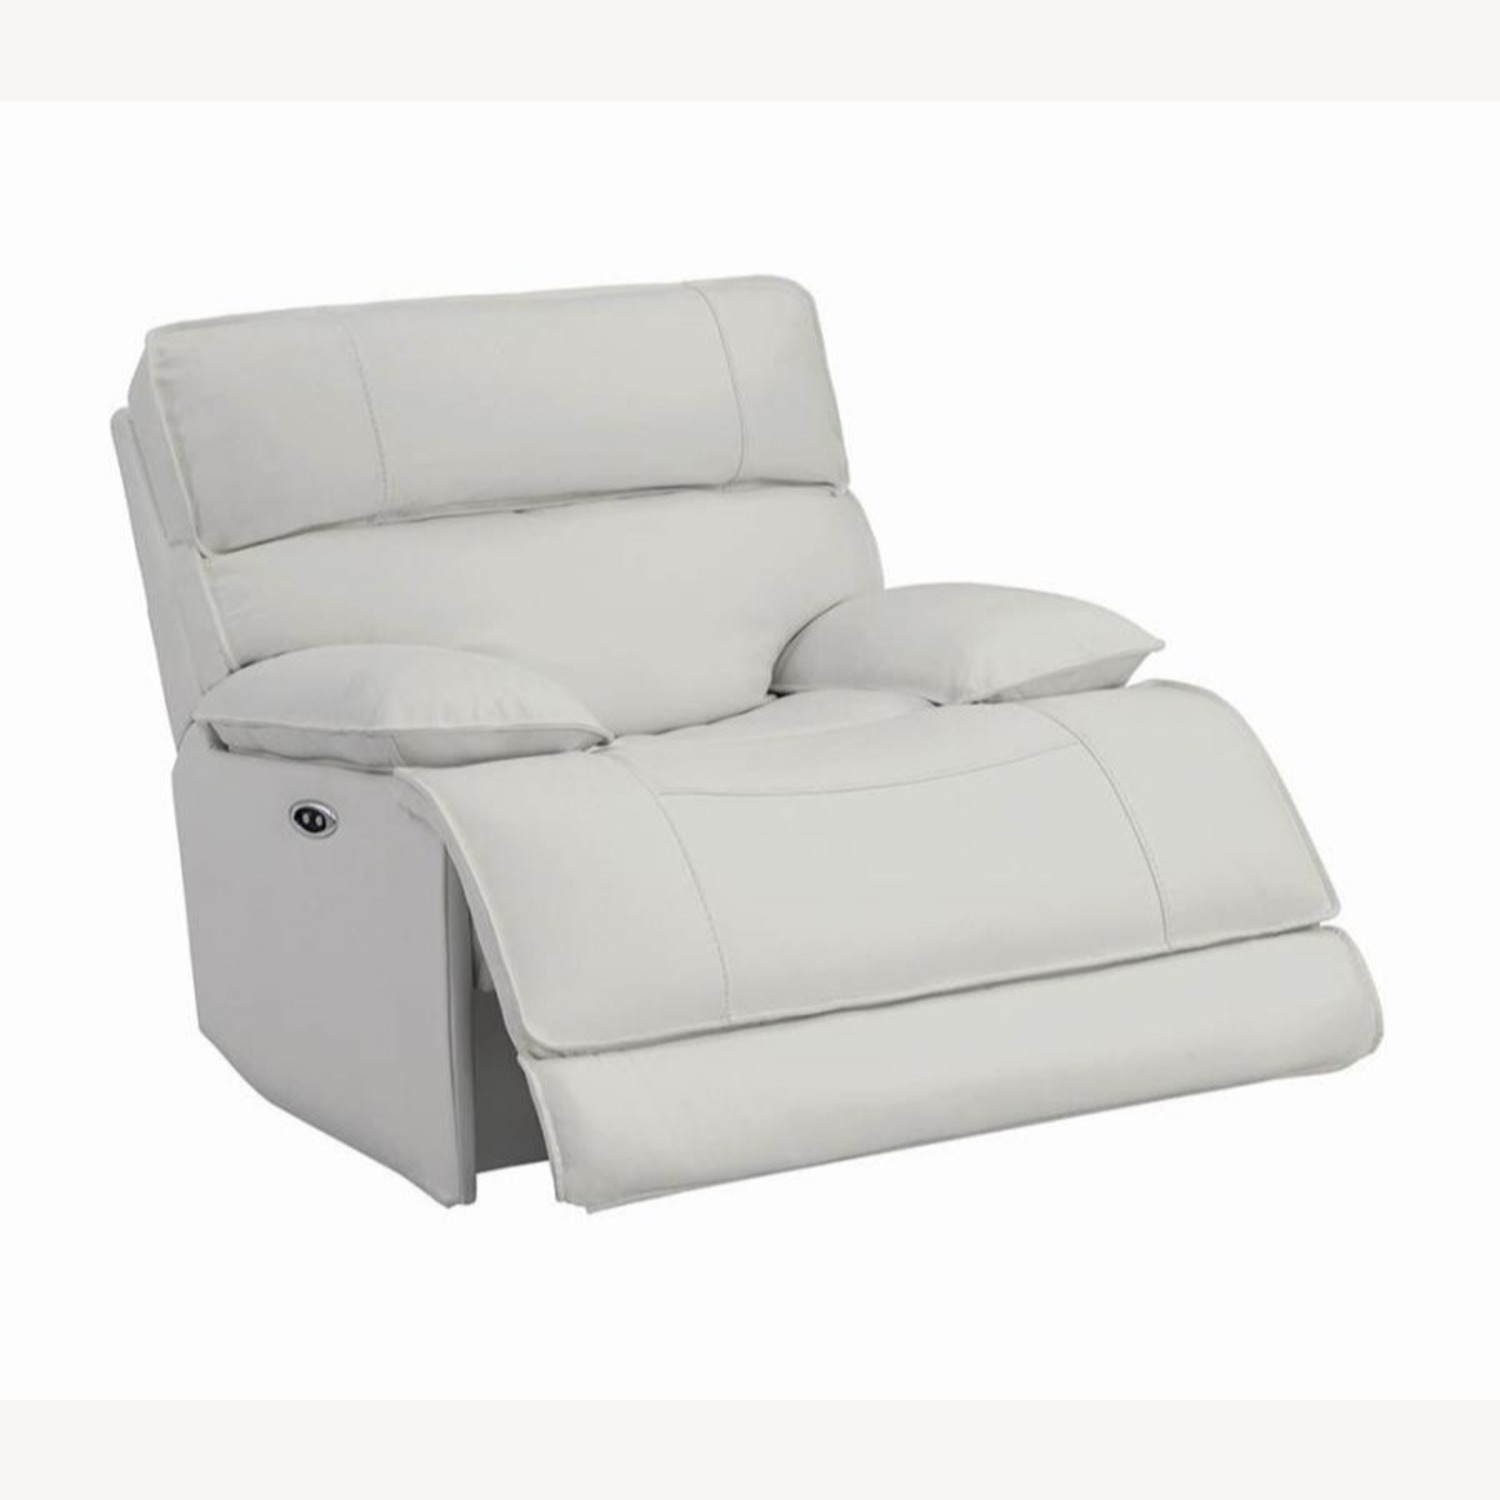 Power Glider Recliner Upholstered In White Leather - image-1